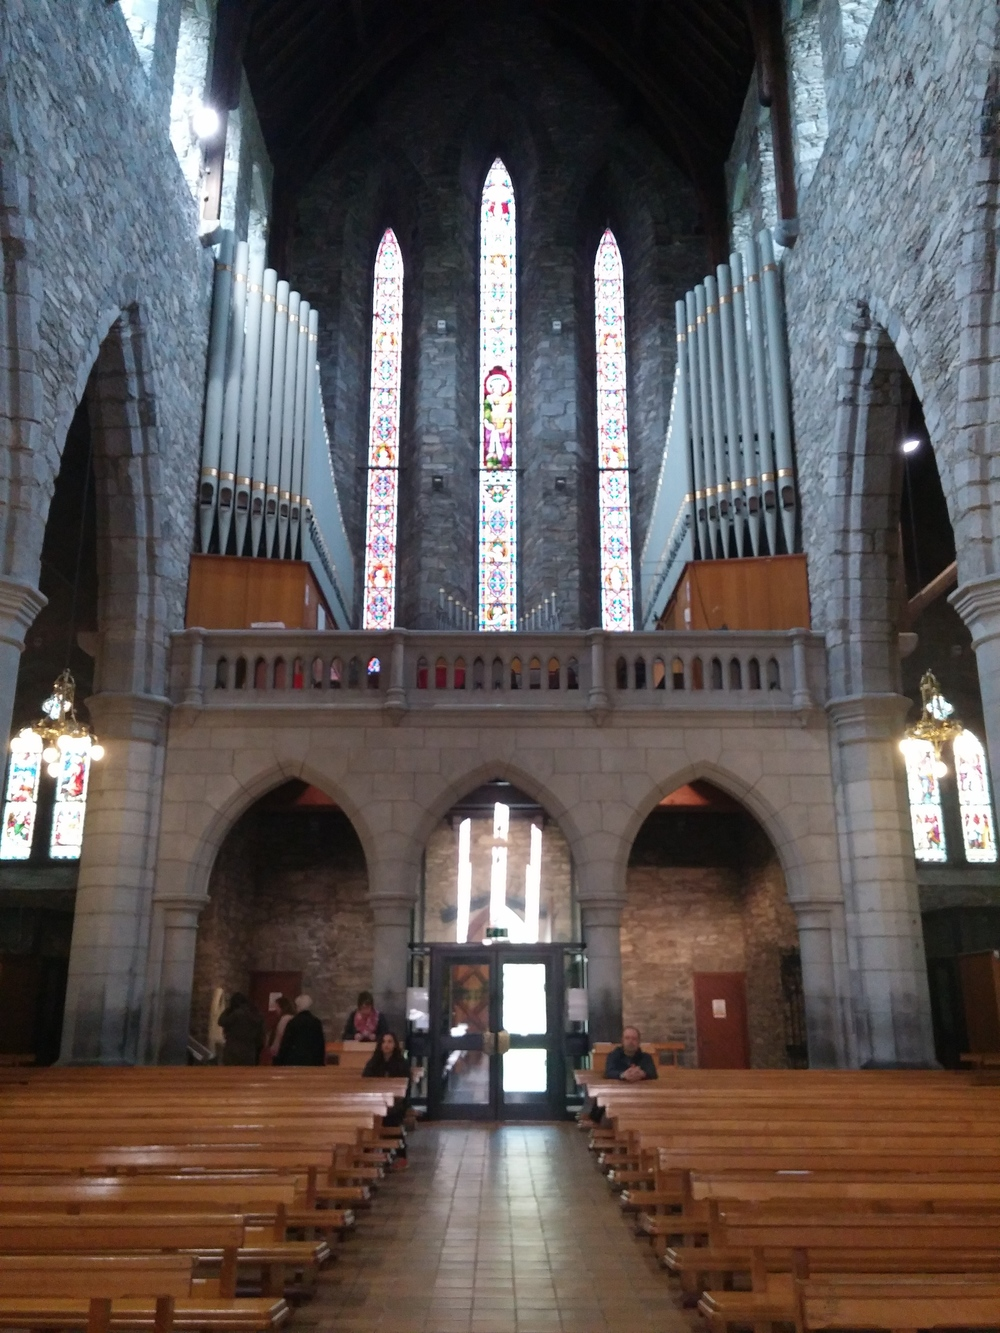 Easter Sunday at St. Mary's Cathedral, Killarney